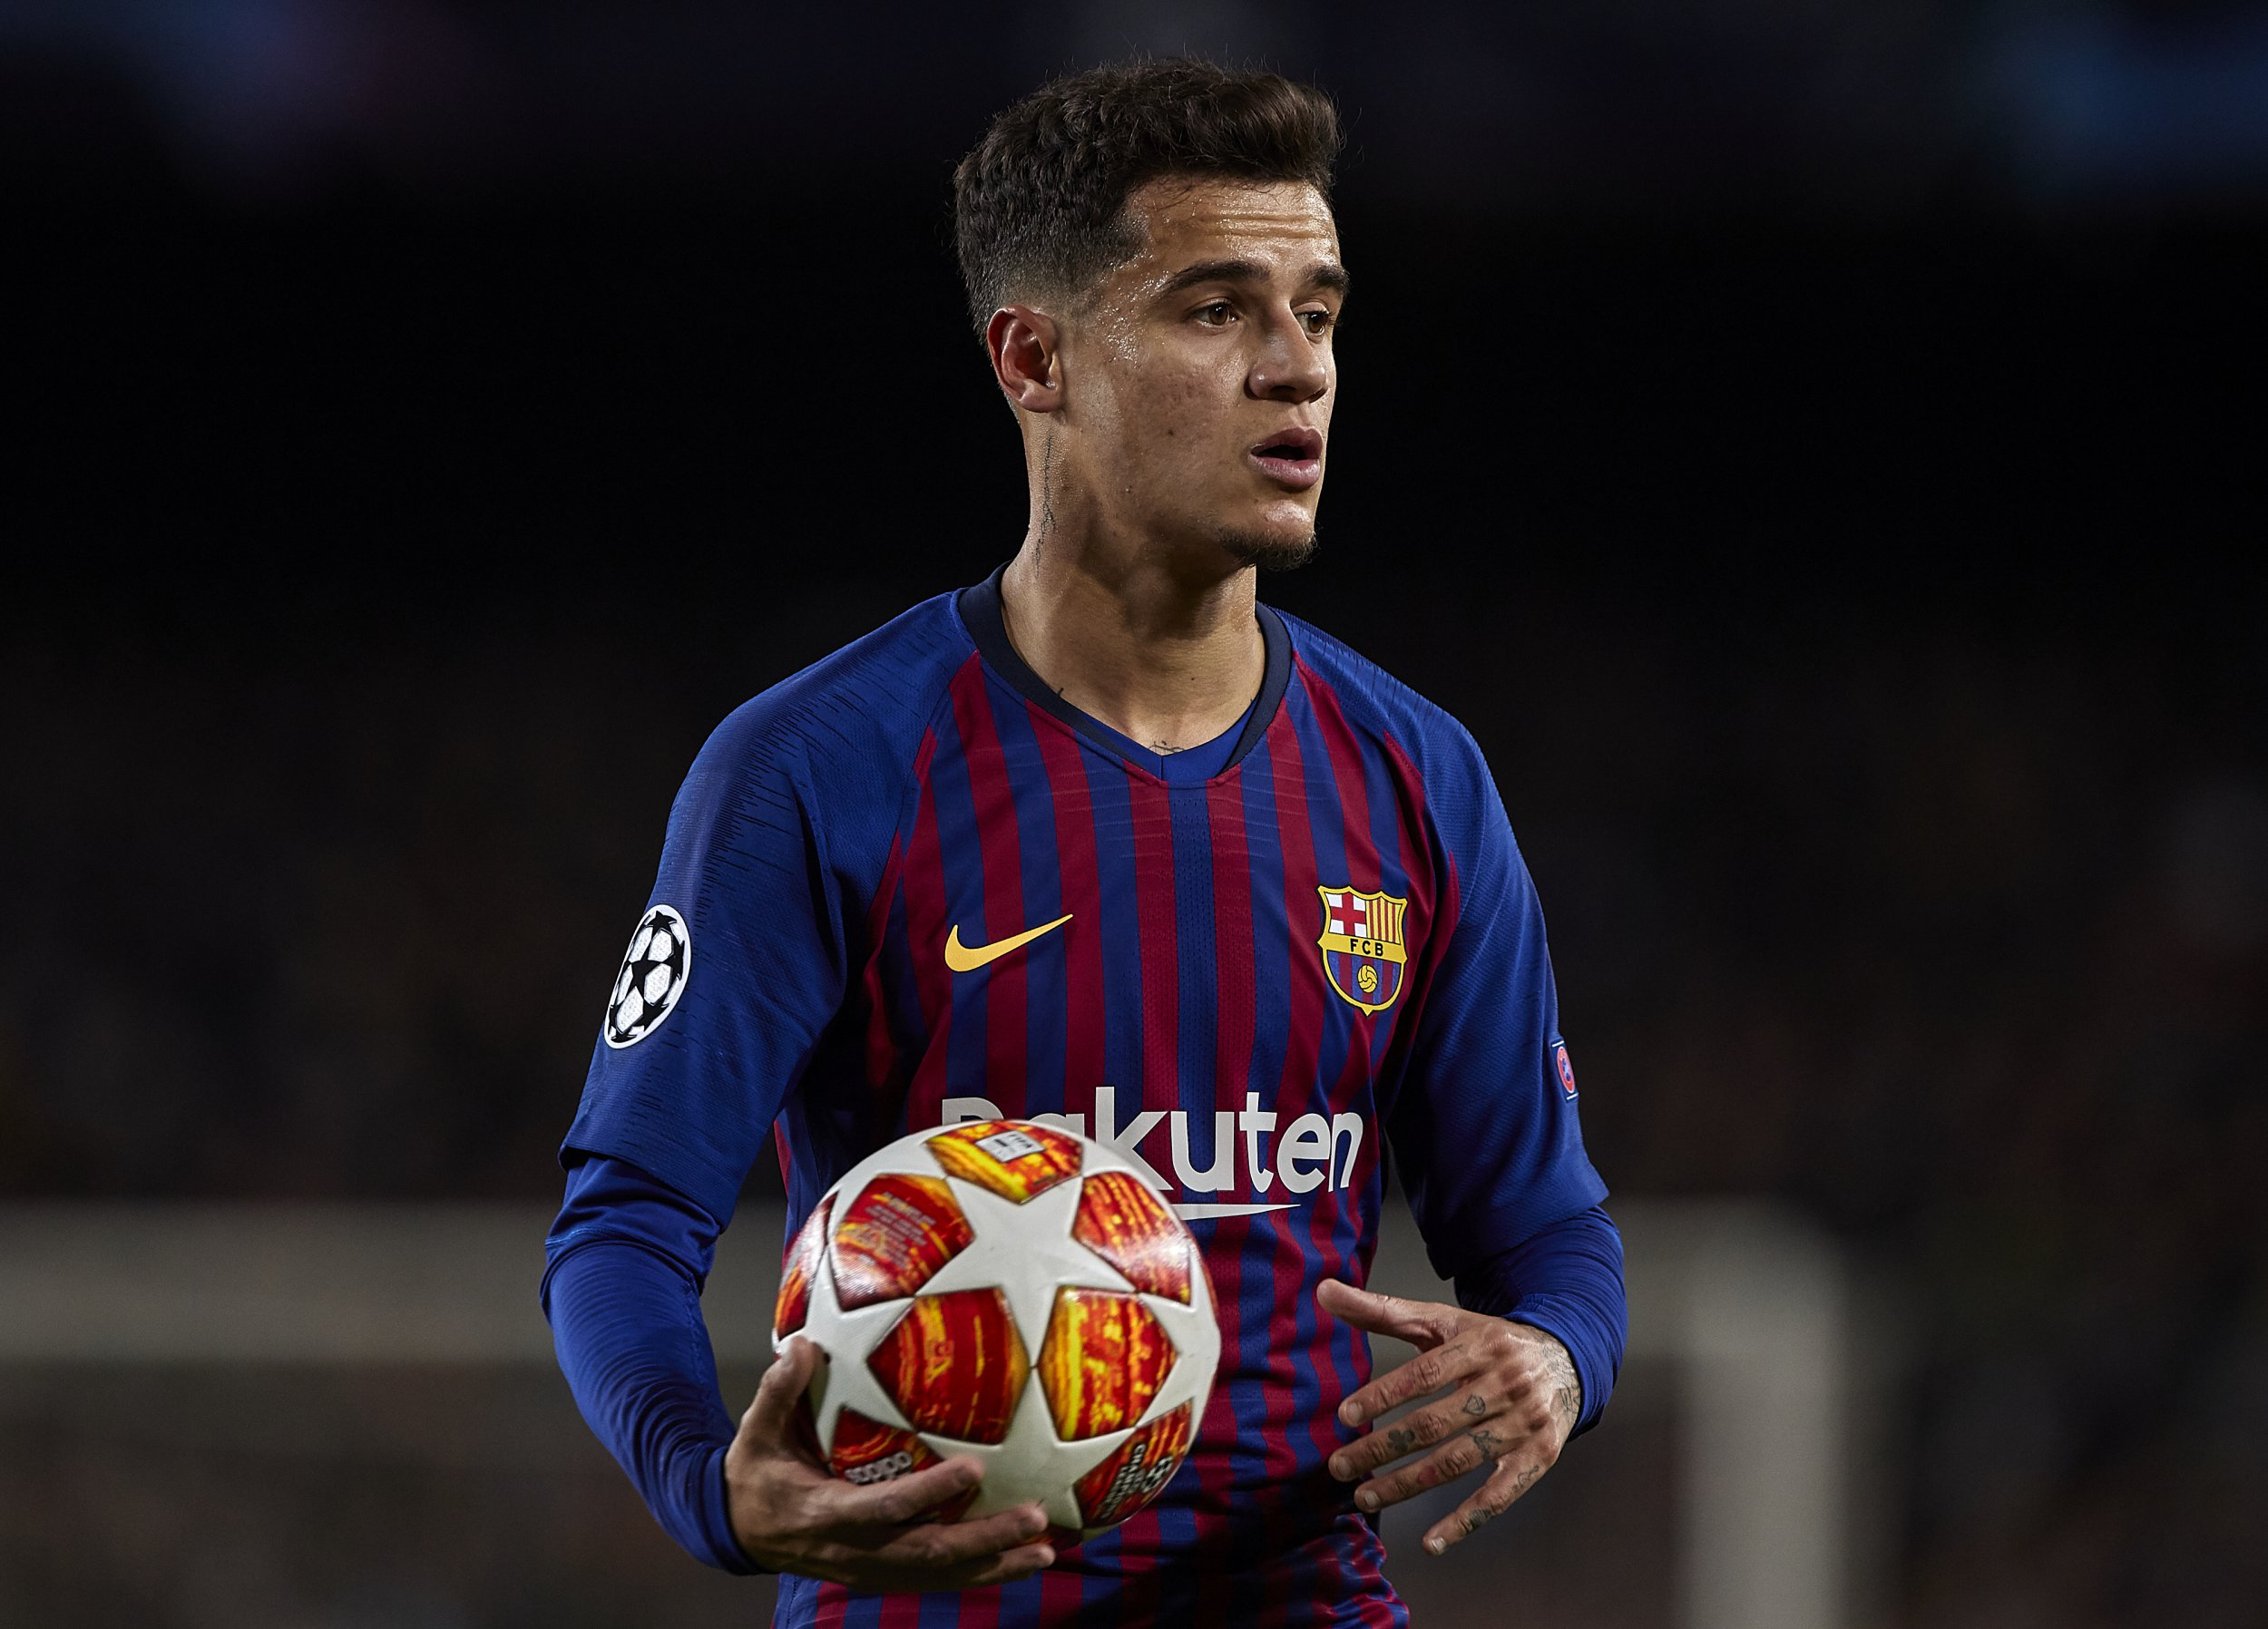 BARCELONA, SPAIN - MARCH 13: Philippe Coutinho of FC Barcelona looks on with the ball during the UEFA Champions League Round of 16 Second Leg match between FC Barcelona and Olympique Lyonnais at Nou Camp on March 13, 2019 in Barcelona, Spain. (Photo by Quality Sport Images/Getty Images)